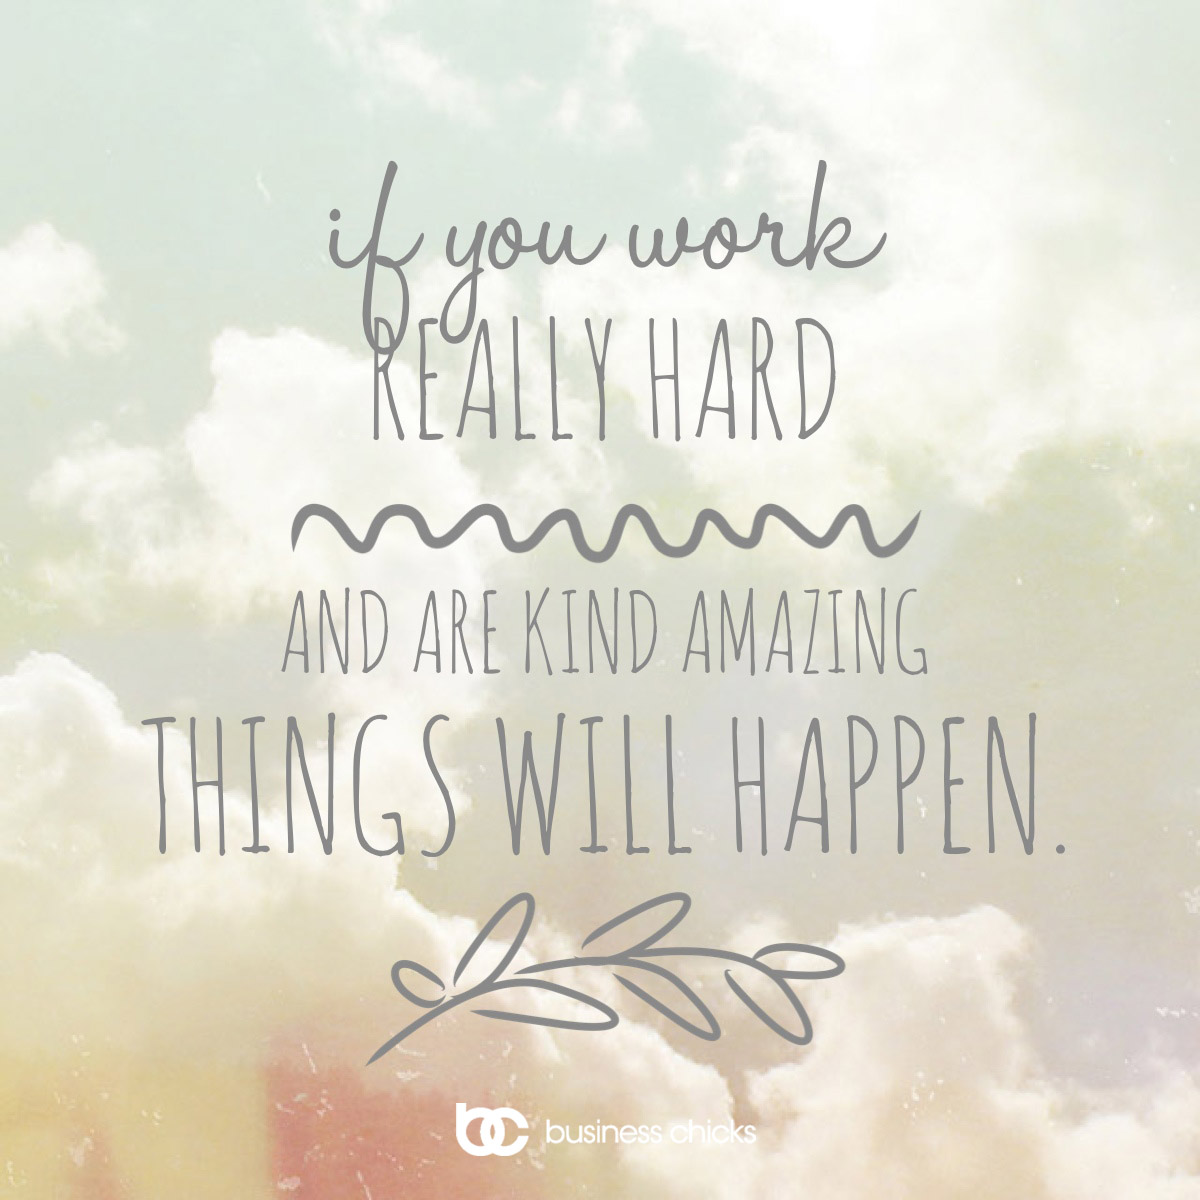 I Like Things To Happen Quote: Quotes On Letting Things Happen. QuotesGram